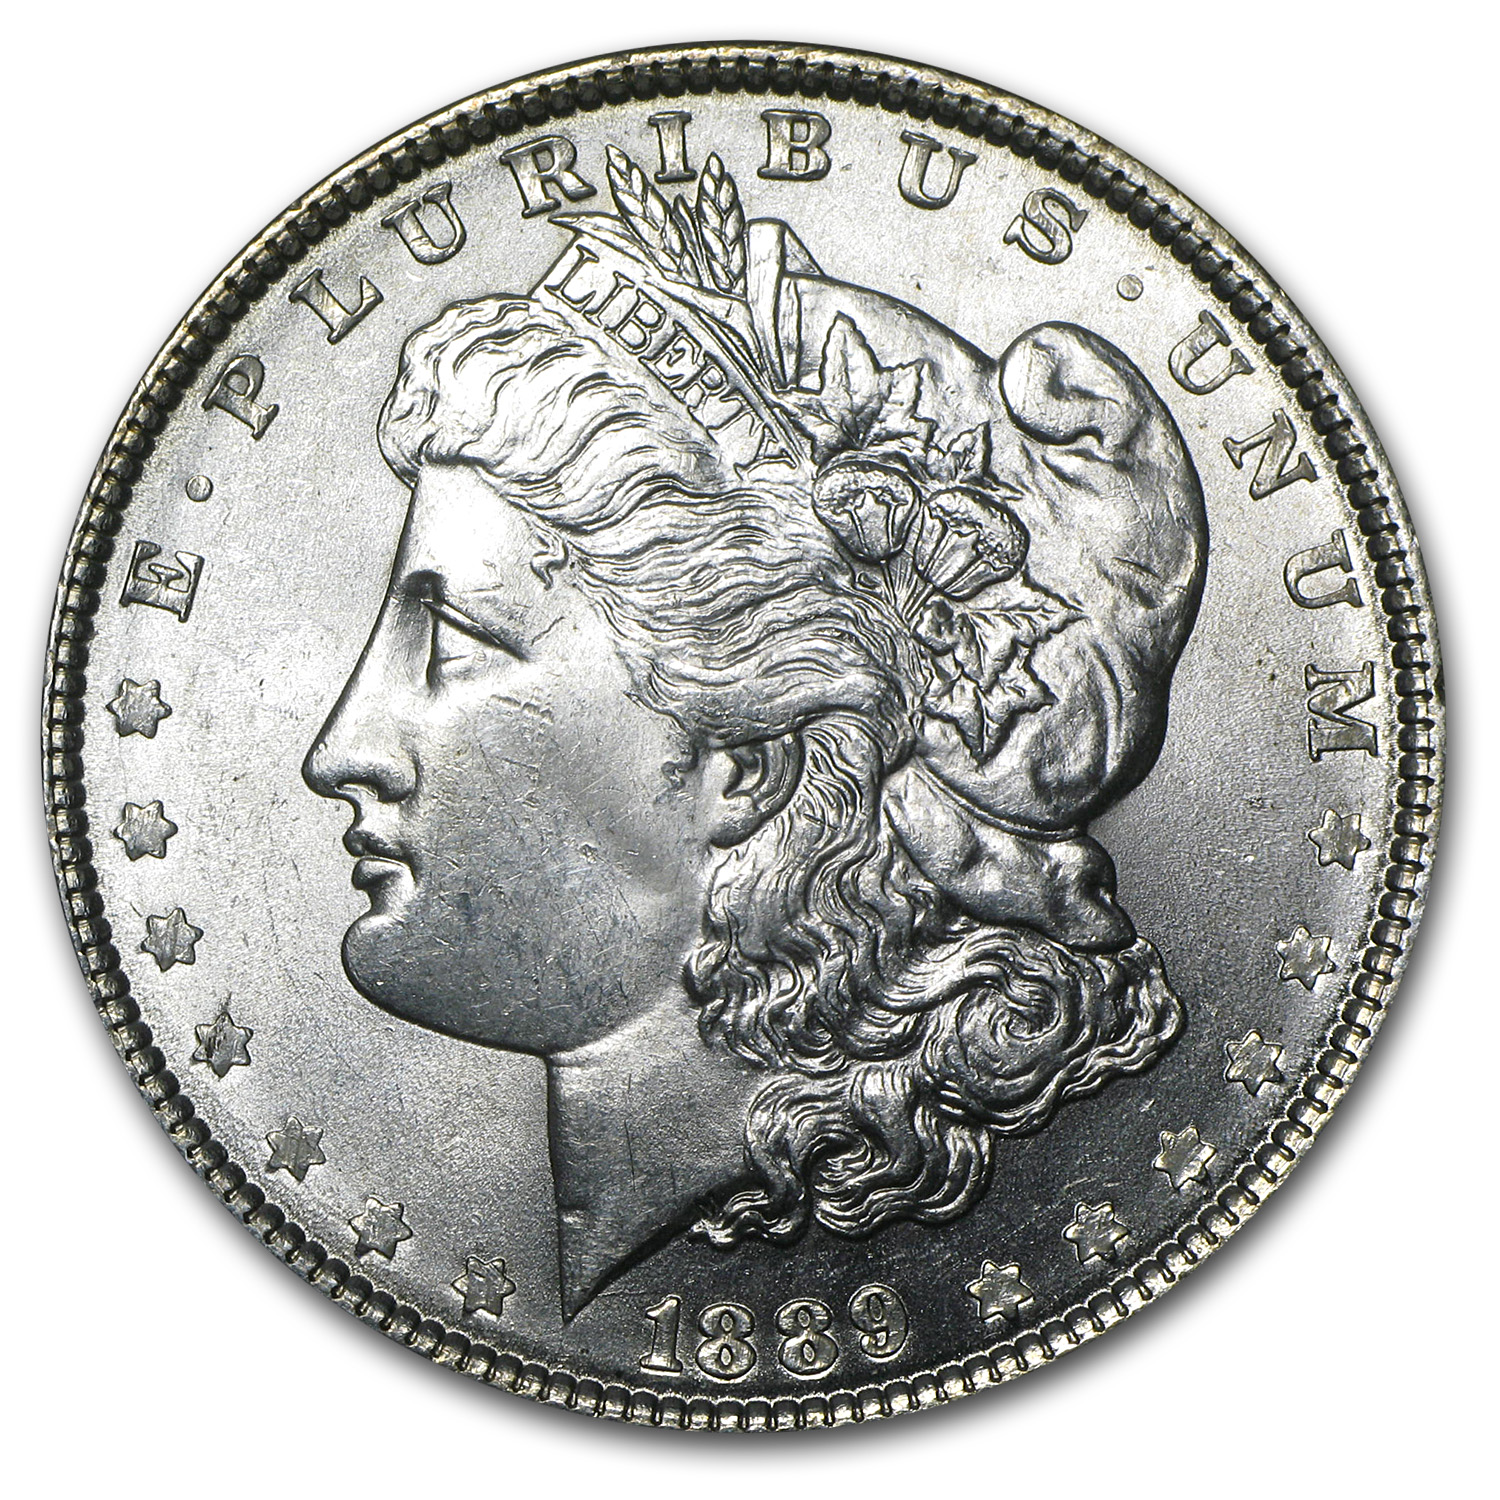 1889 Morgan Dollar - Brilliant Uncirculated